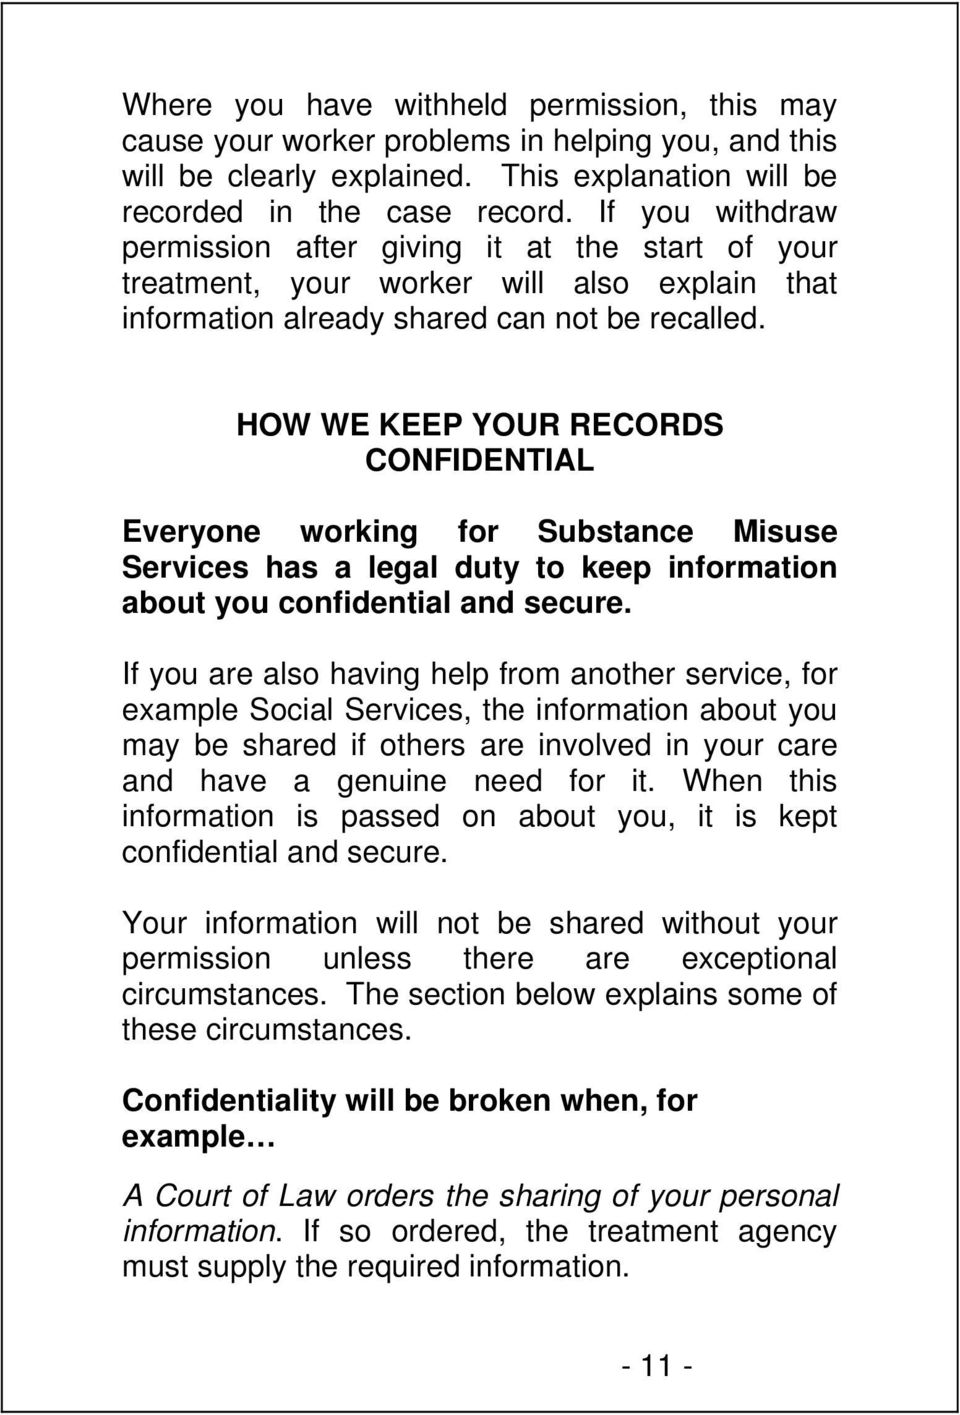 HOW WE KEEP YOUR RECORDS CONFIDENTIAL Everyone working for Substance Misuse Services has a legal duty to keep information about you confidential and secure.